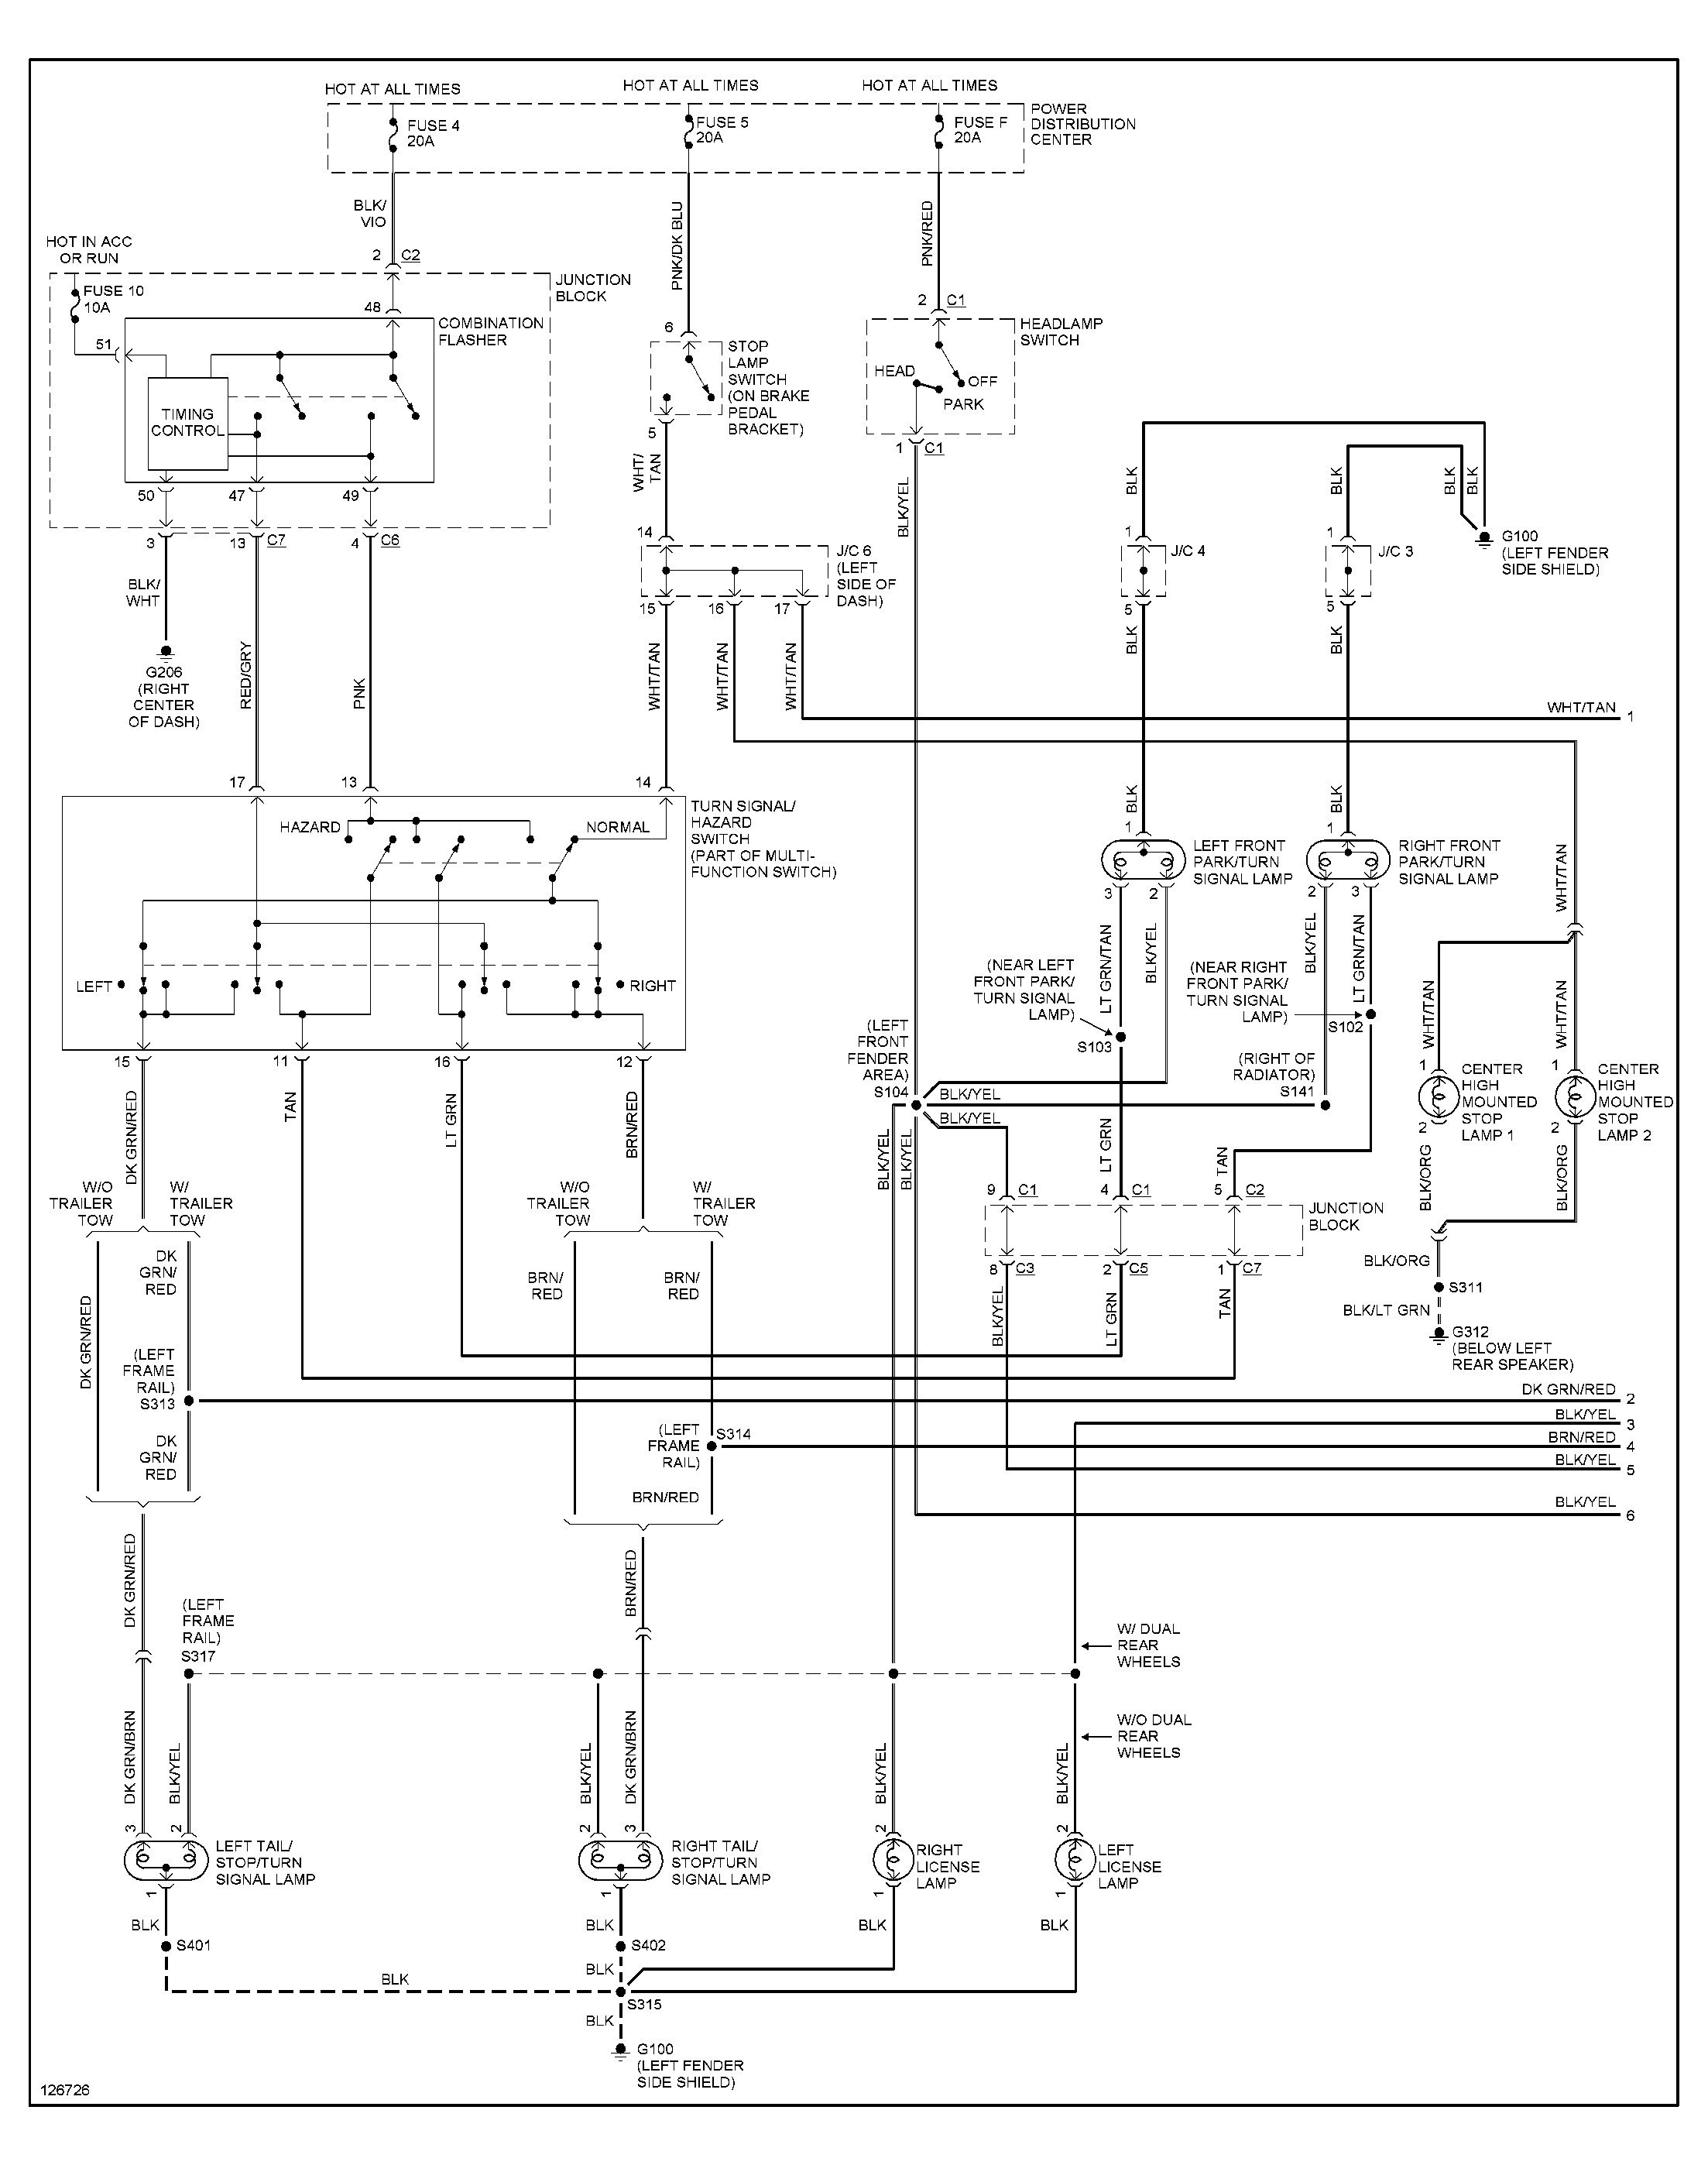 Dodge Ram Wiring Diagram Free Picture on 02 dodge ram clutch, 02 jeep liberty wiring diagram, 02 hyundai accent wiring diagram, 02 ford f350 wiring diagram, 02 dodge ram wheels, 02 dodge ram firing order, 02 dodge ram engine, 02 toyota tundra wiring diagram, 02 dodge ram speedometer, 2002 dodge heater wiring diagram, 02 buick century wiring diagram, 02 dodge ram lights, 02 toyota highlander wiring diagram, 2012 ram headlight wiring diagram, 02 jeep grand cherokee wiring diagram, 02 dodge ram seats, 02 ford explorer sport trac wiring diagram, 02 subaru impreza wiring diagram, 02 nissan xterra wiring diagram, 02 bmw 7 series wiring diagram,